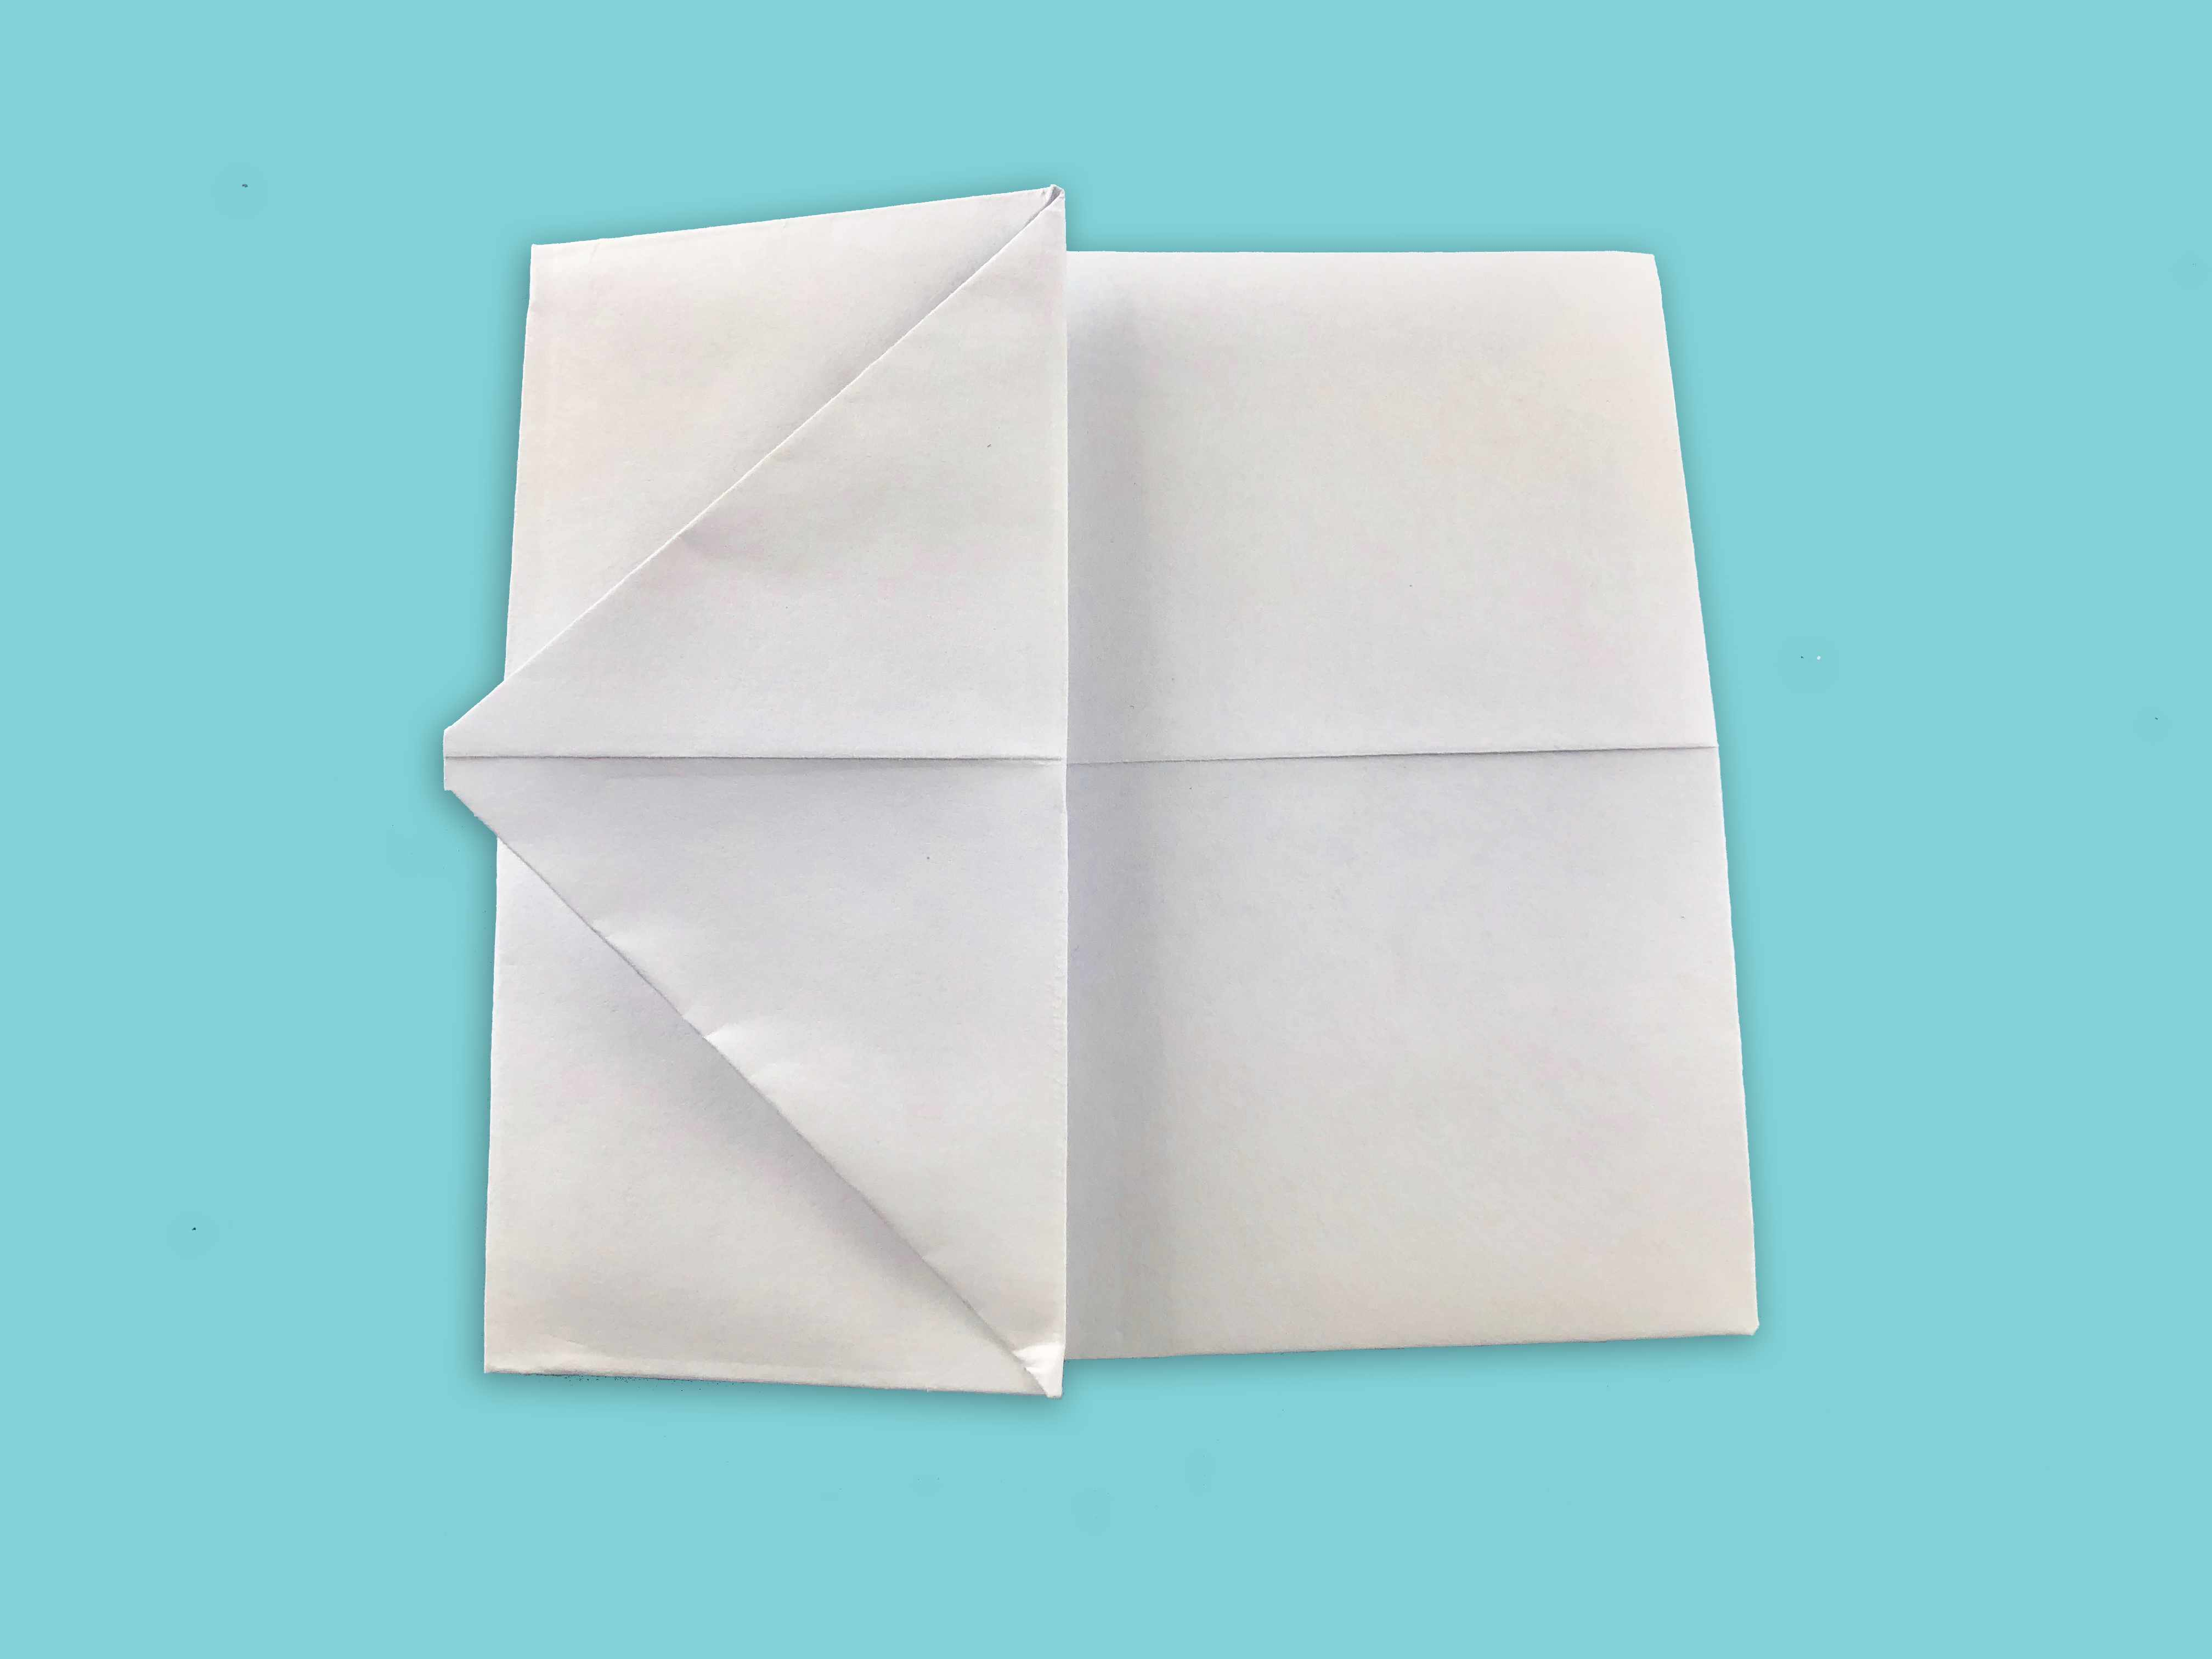 How to Fold a Clever Pull Tab Note With Paper